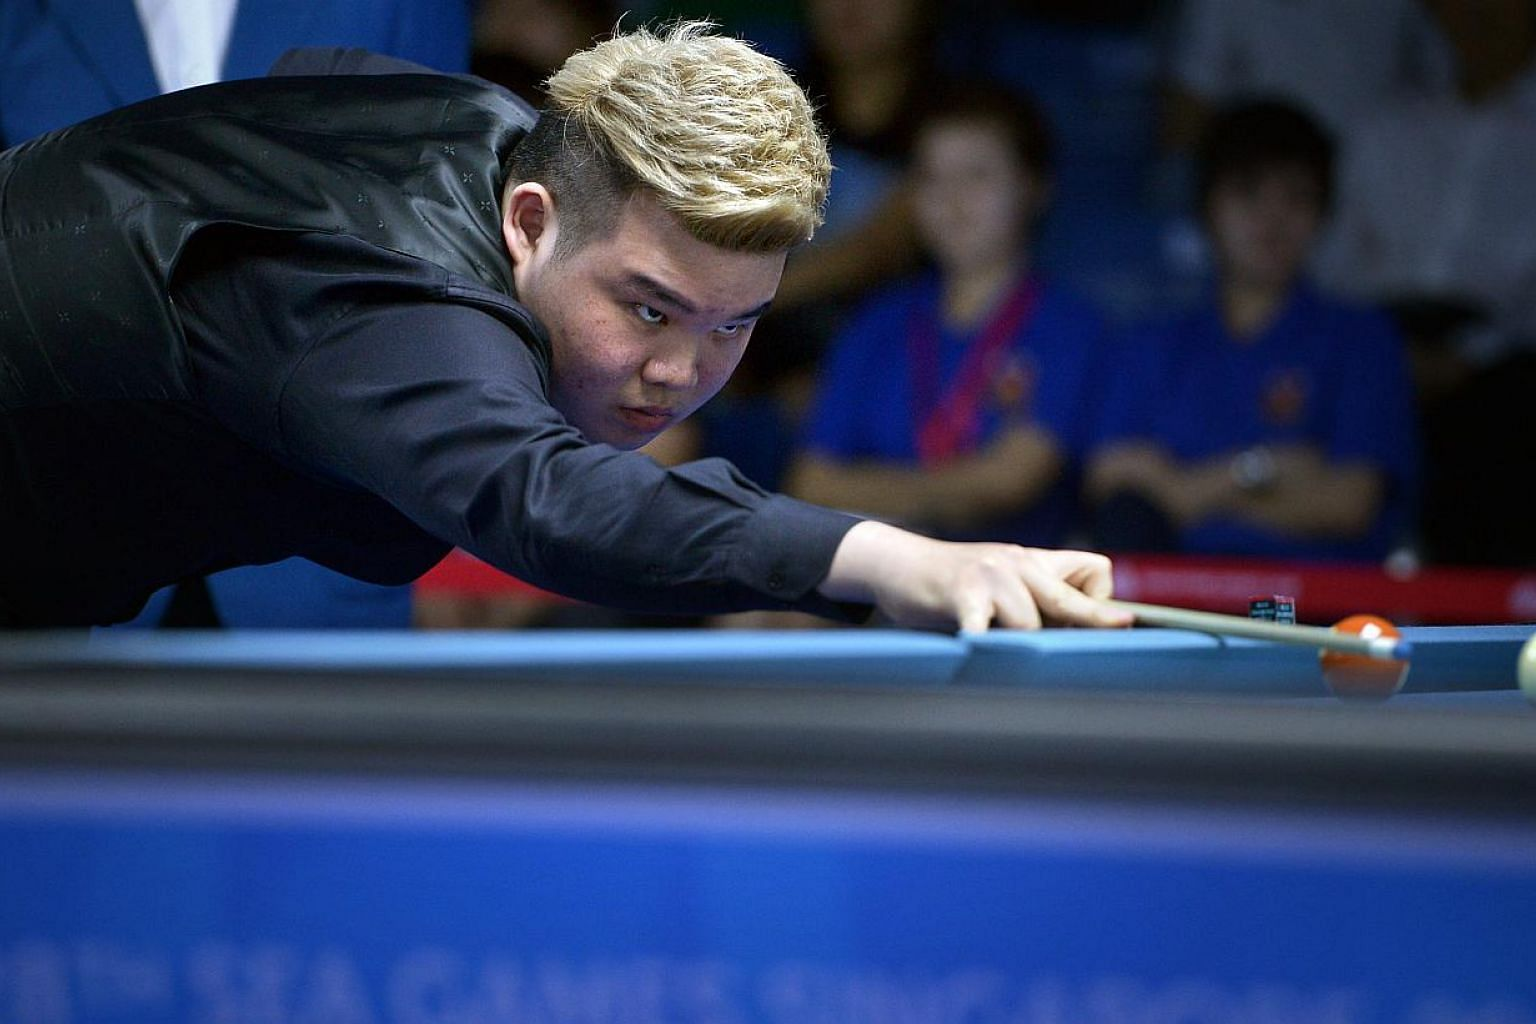 Singapore's Aloysius Yapp, the reigning world Under-19 pool champion, crashed out of the SEA Games 9-ball event after losing in the quarter-finals on June 9, 2015. -- ST PHOTO: KUA CHEE SIONG